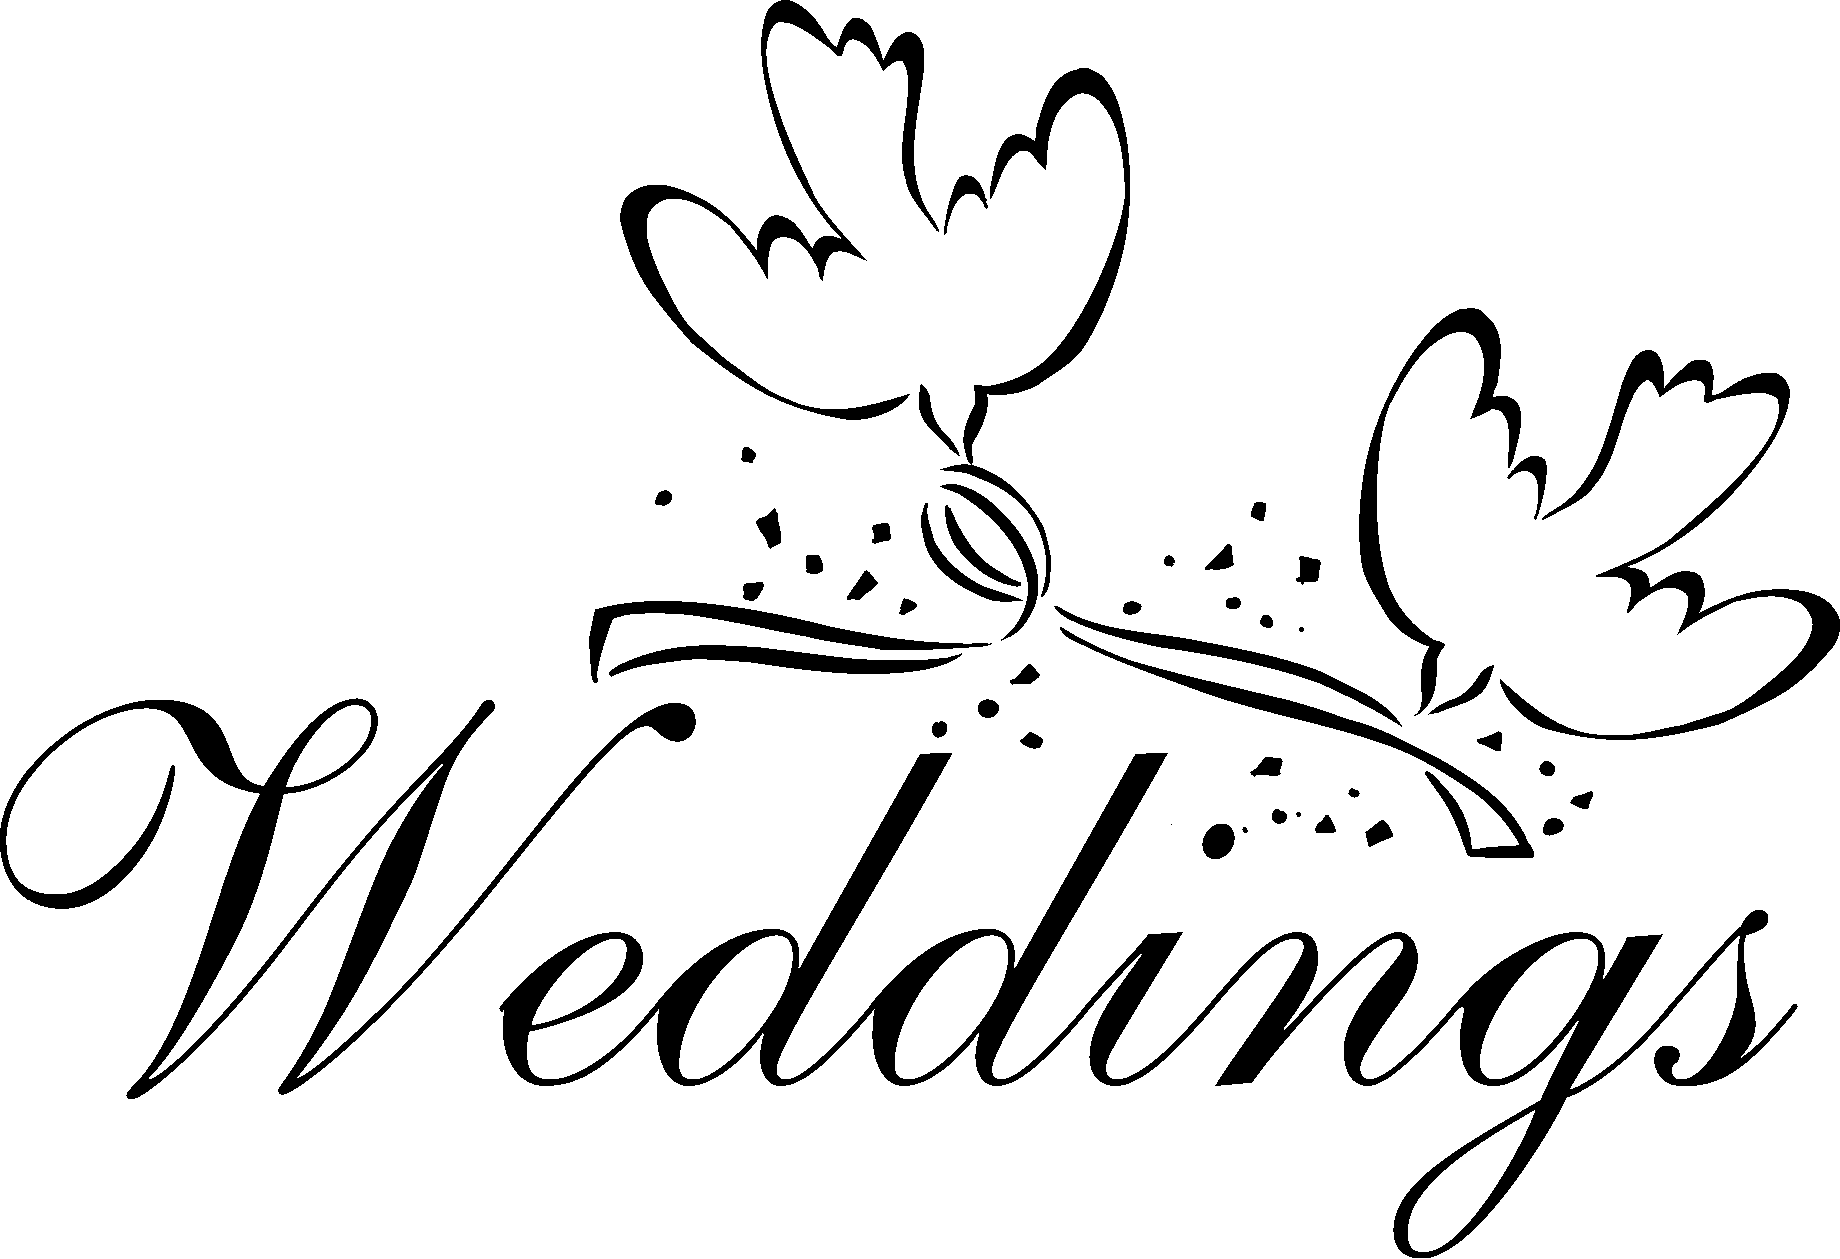 Wedding Dove Png Hd Transparent Wedding 178275 Png Images Pngio